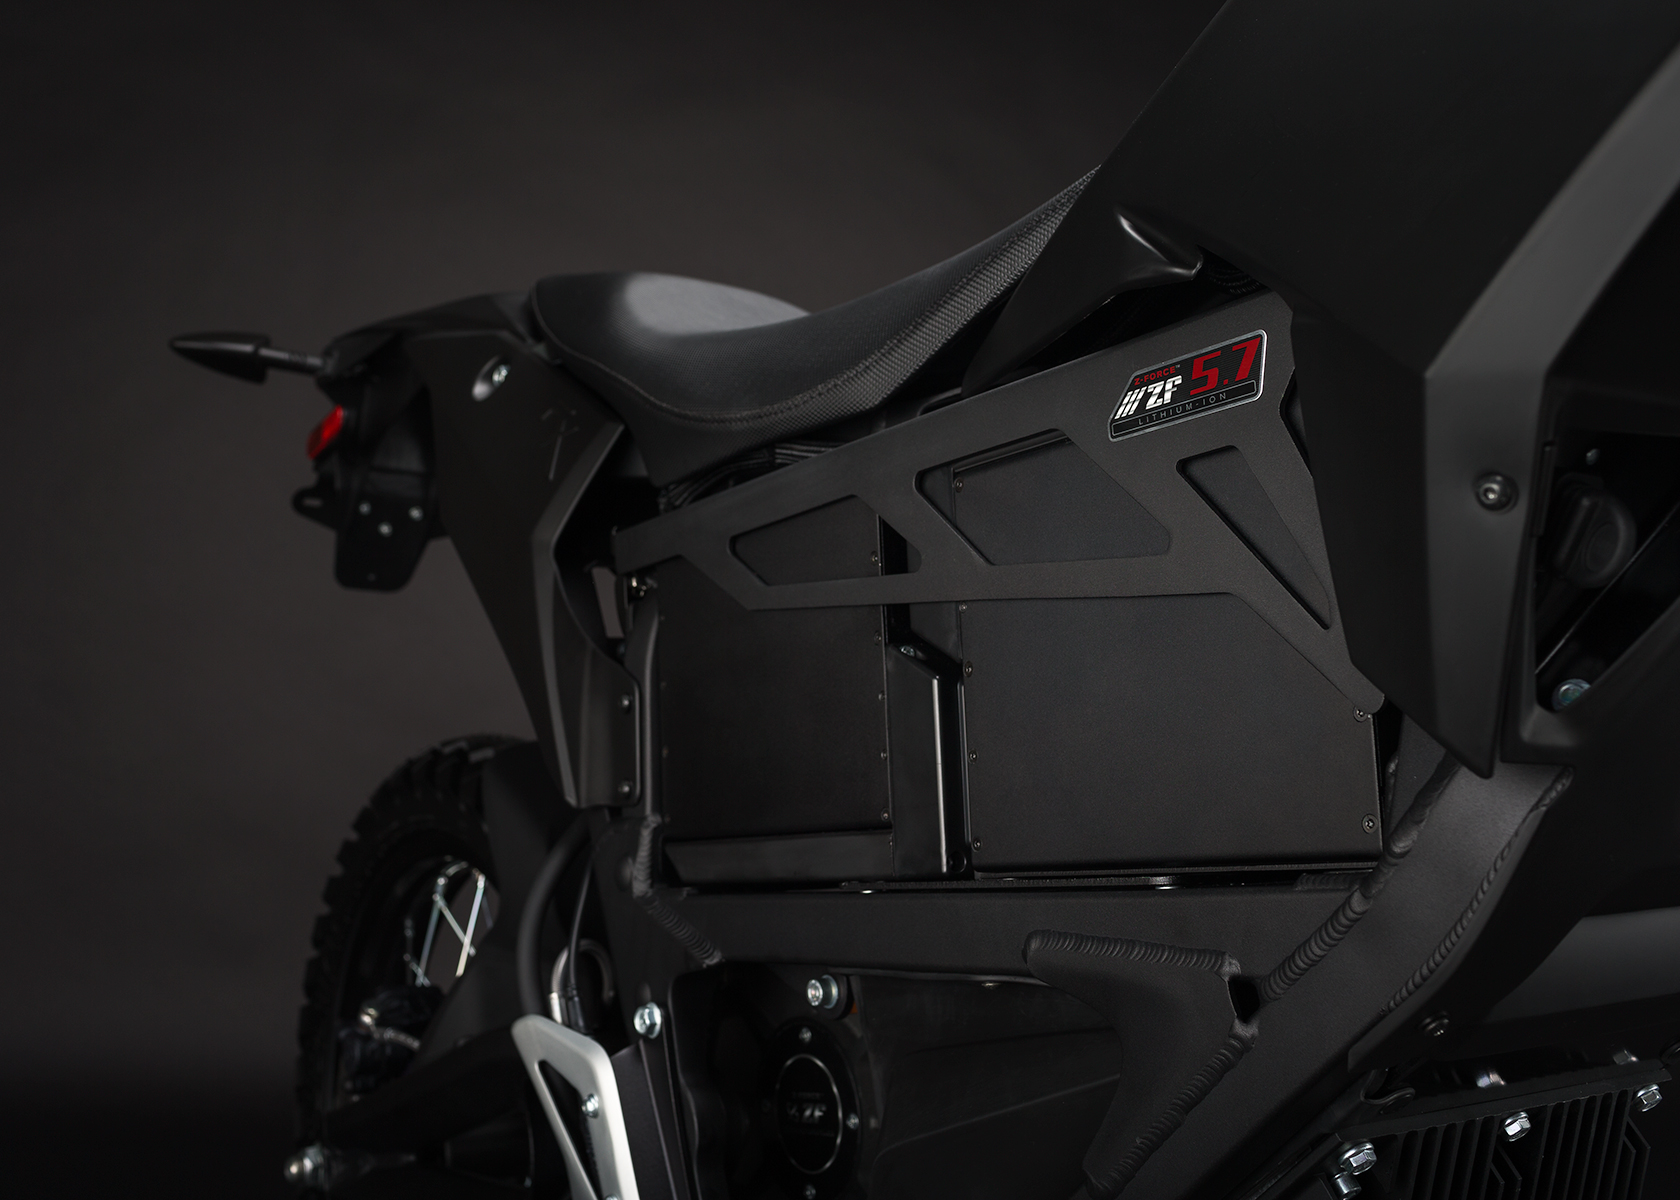 2014 Zero FX Electric Motorcycle: Power Pack